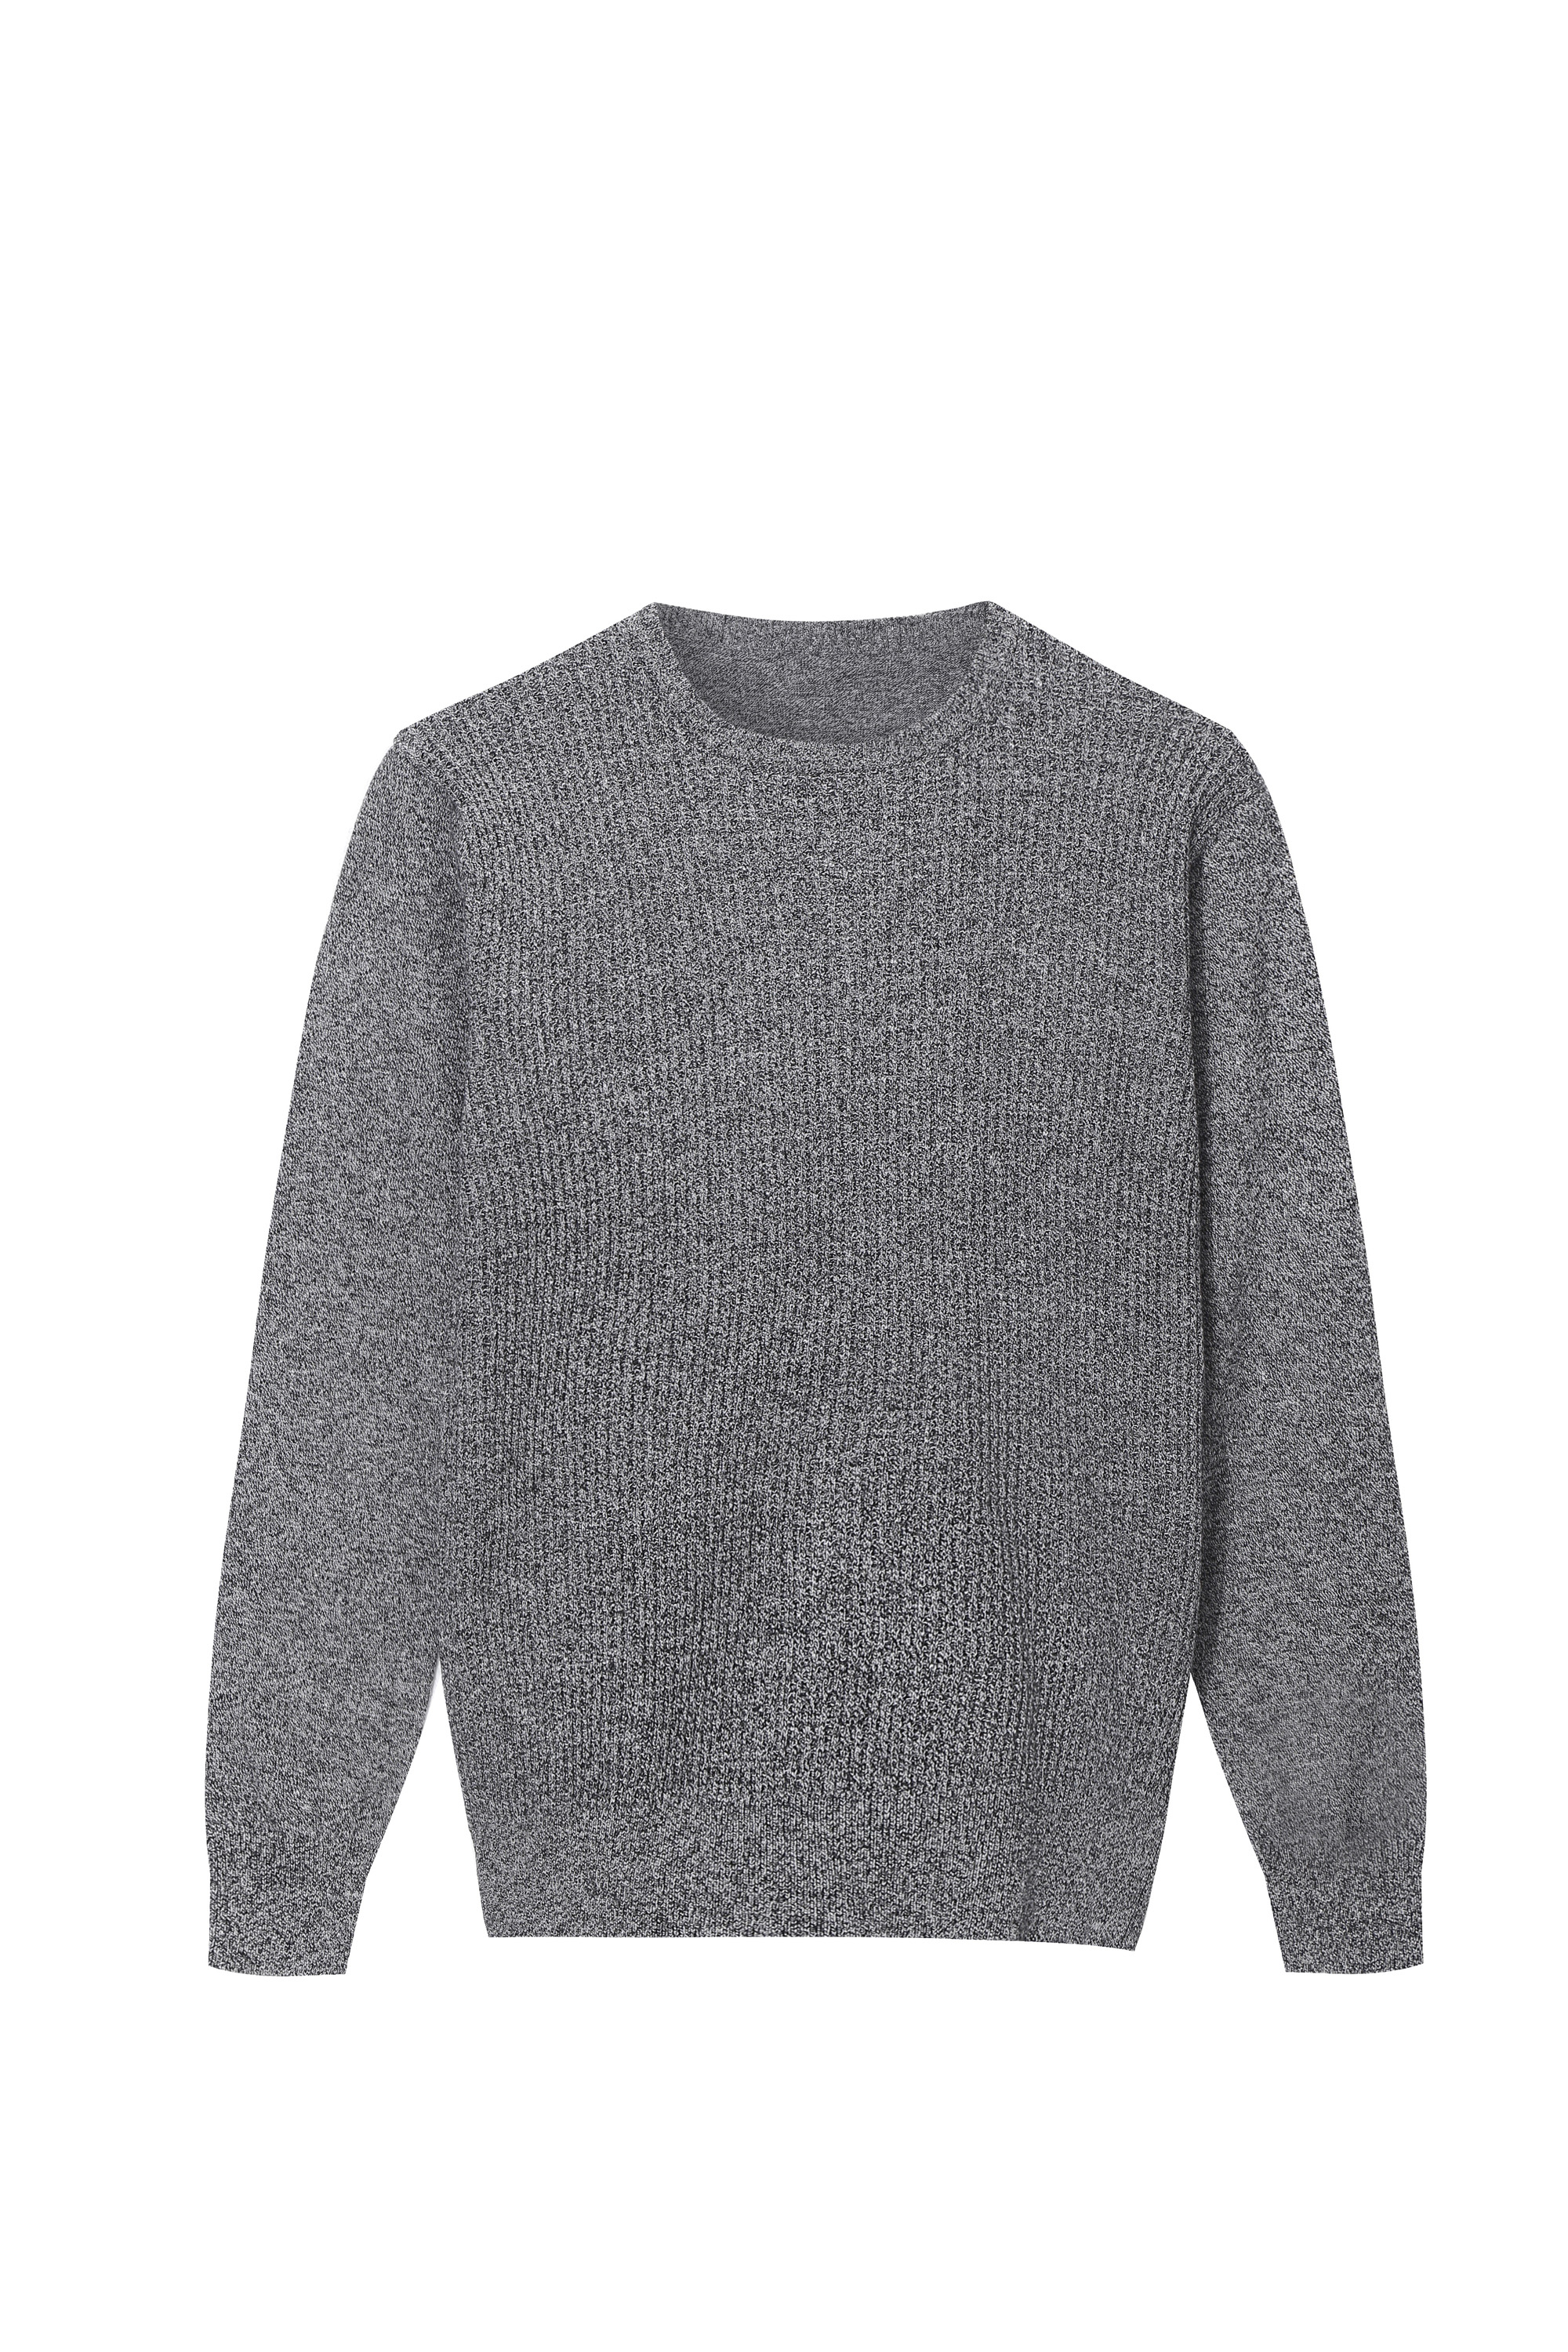 Men's Crew neck Cable texture Pullover